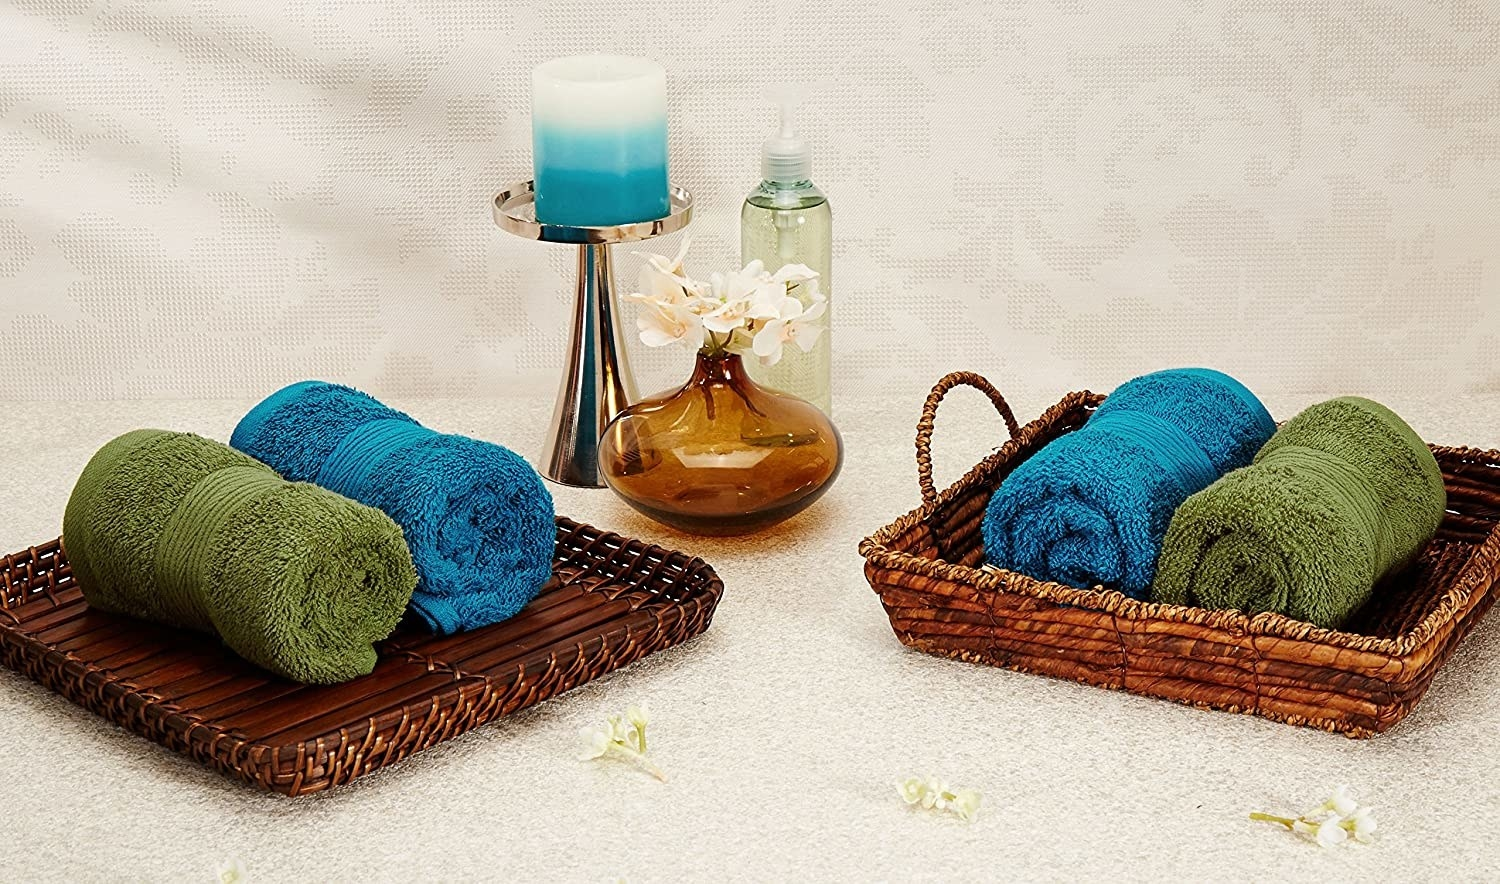 A set of blue and green towels on a rack